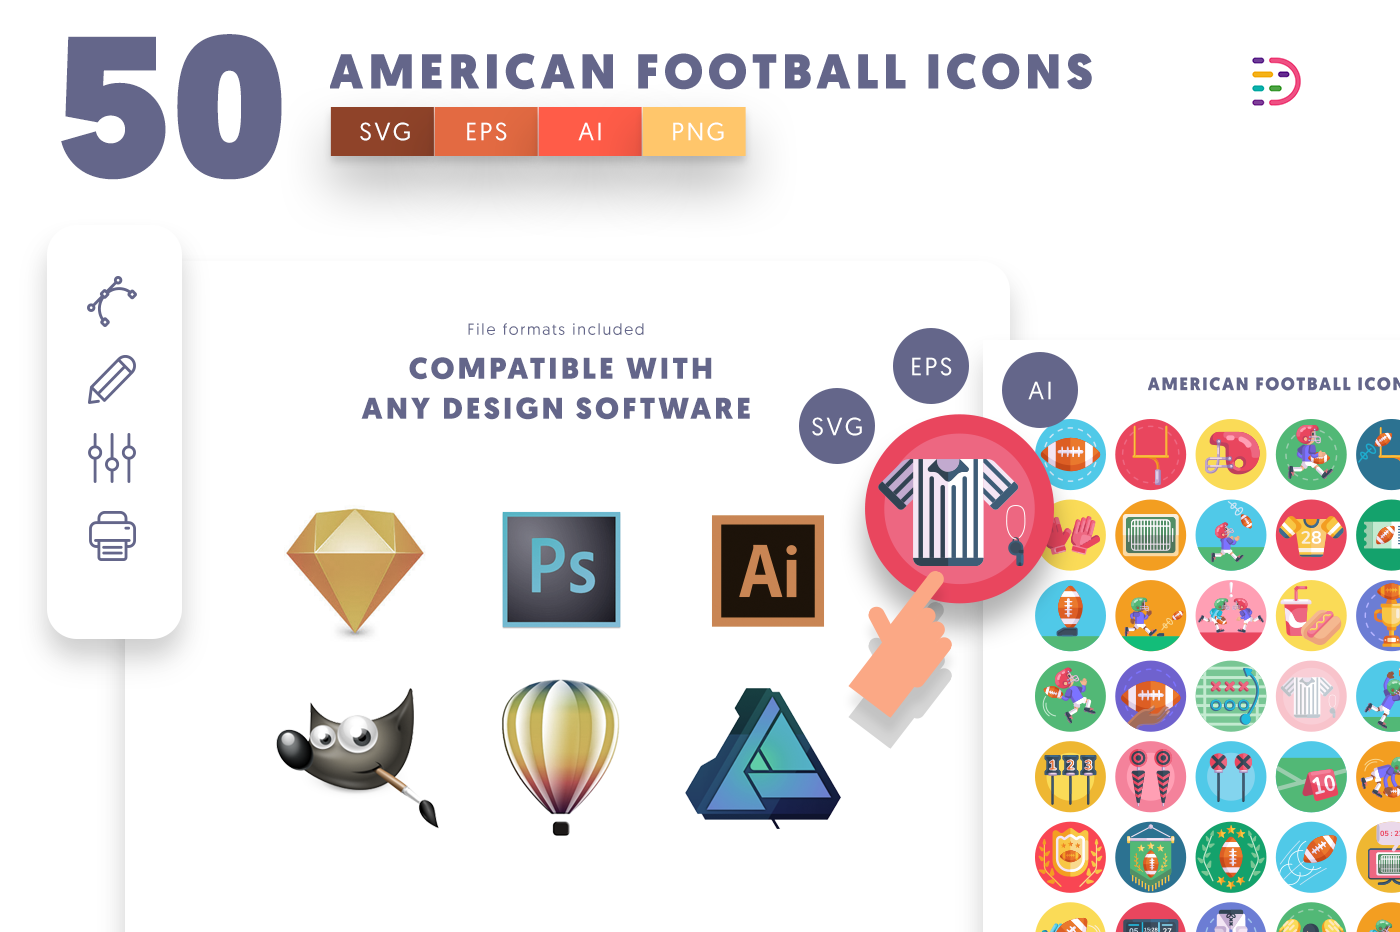 full vector 50 American Football Icons EPS, SVG, PNG